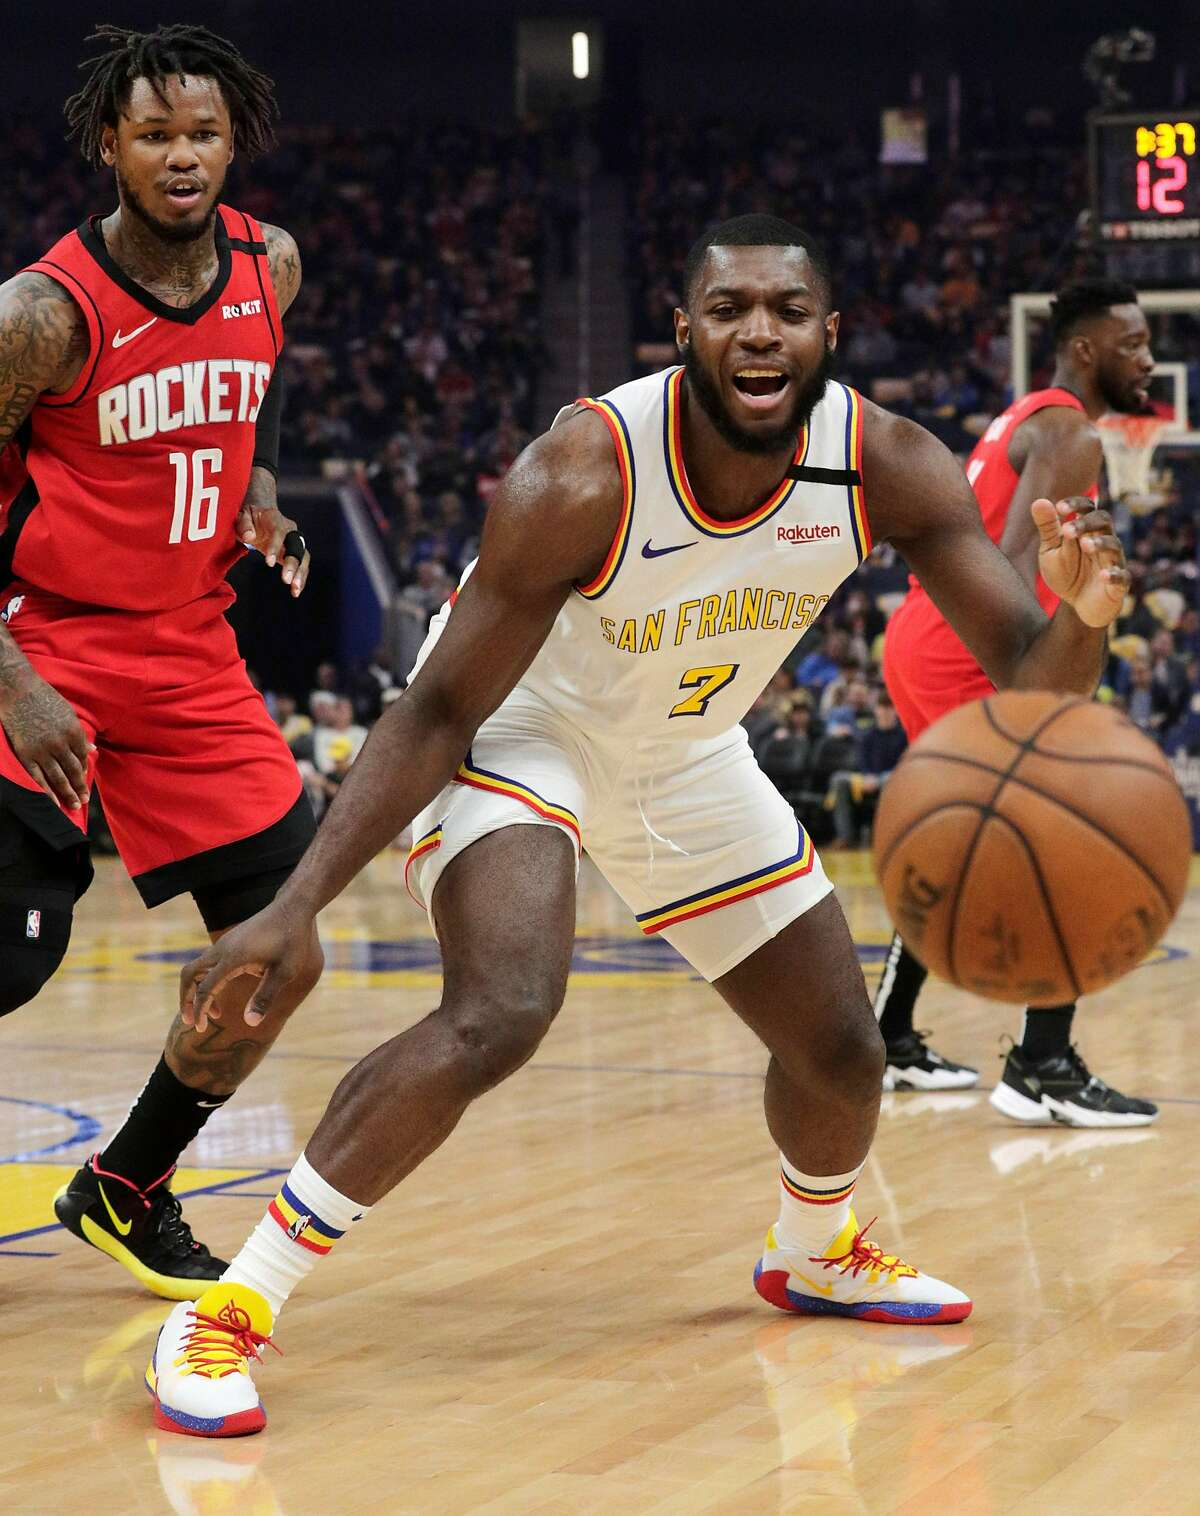 Eric Paschall (7) reacts after losing the ball In the first half as the Golden State Warriors played the Houston Rockets at Chase Center in San Francisco, Calif., on Thursday, February 20, 2020.